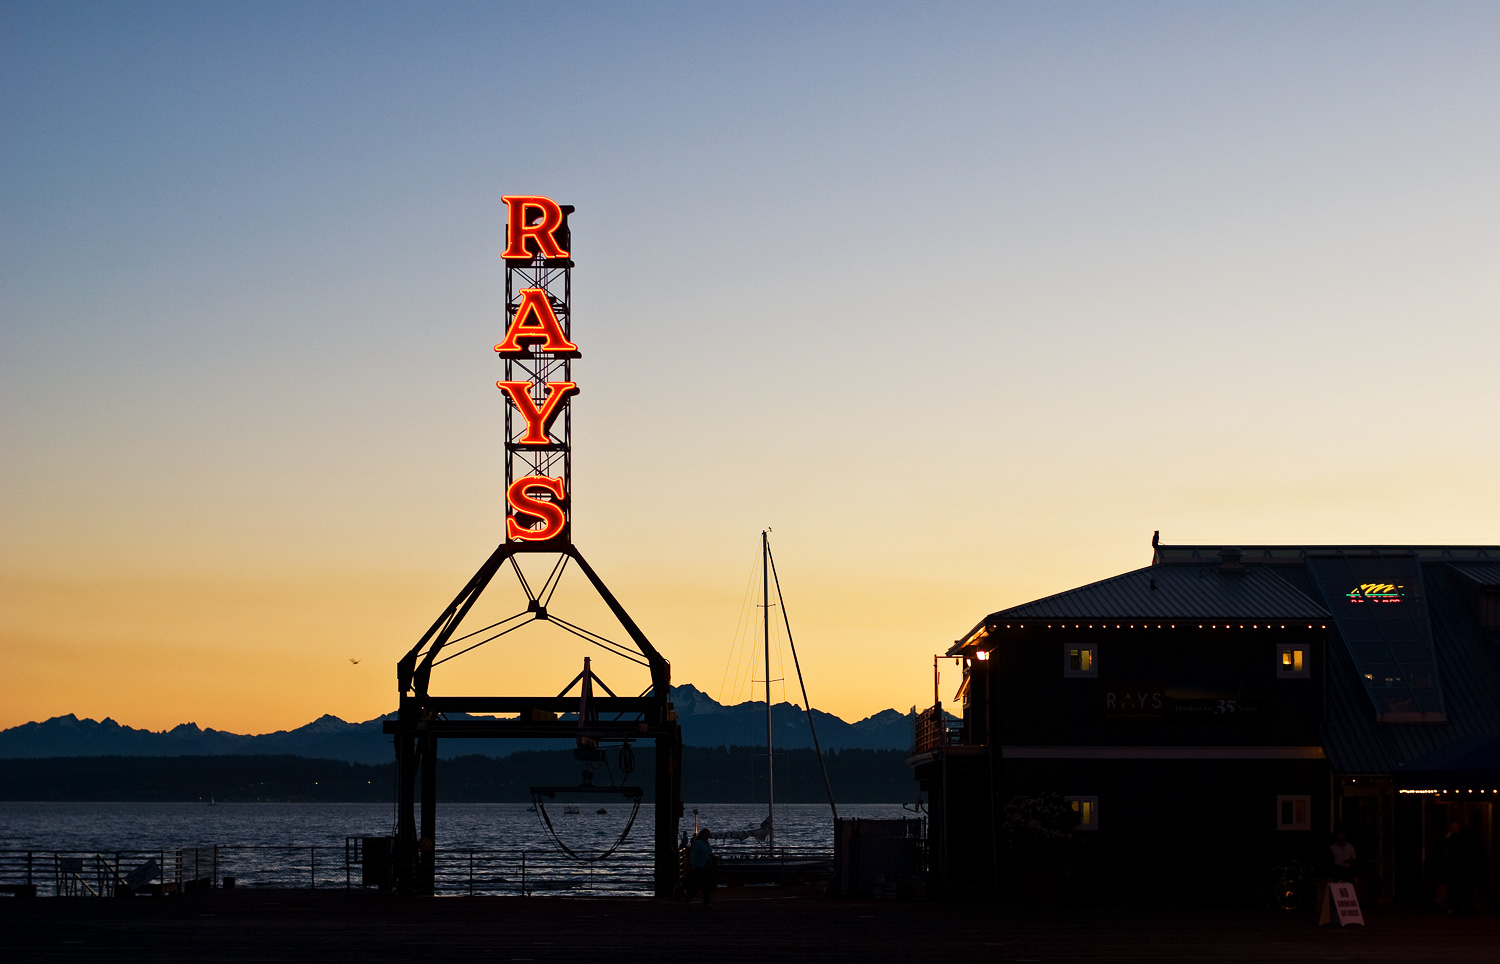 Ray's Boathouse (sign)